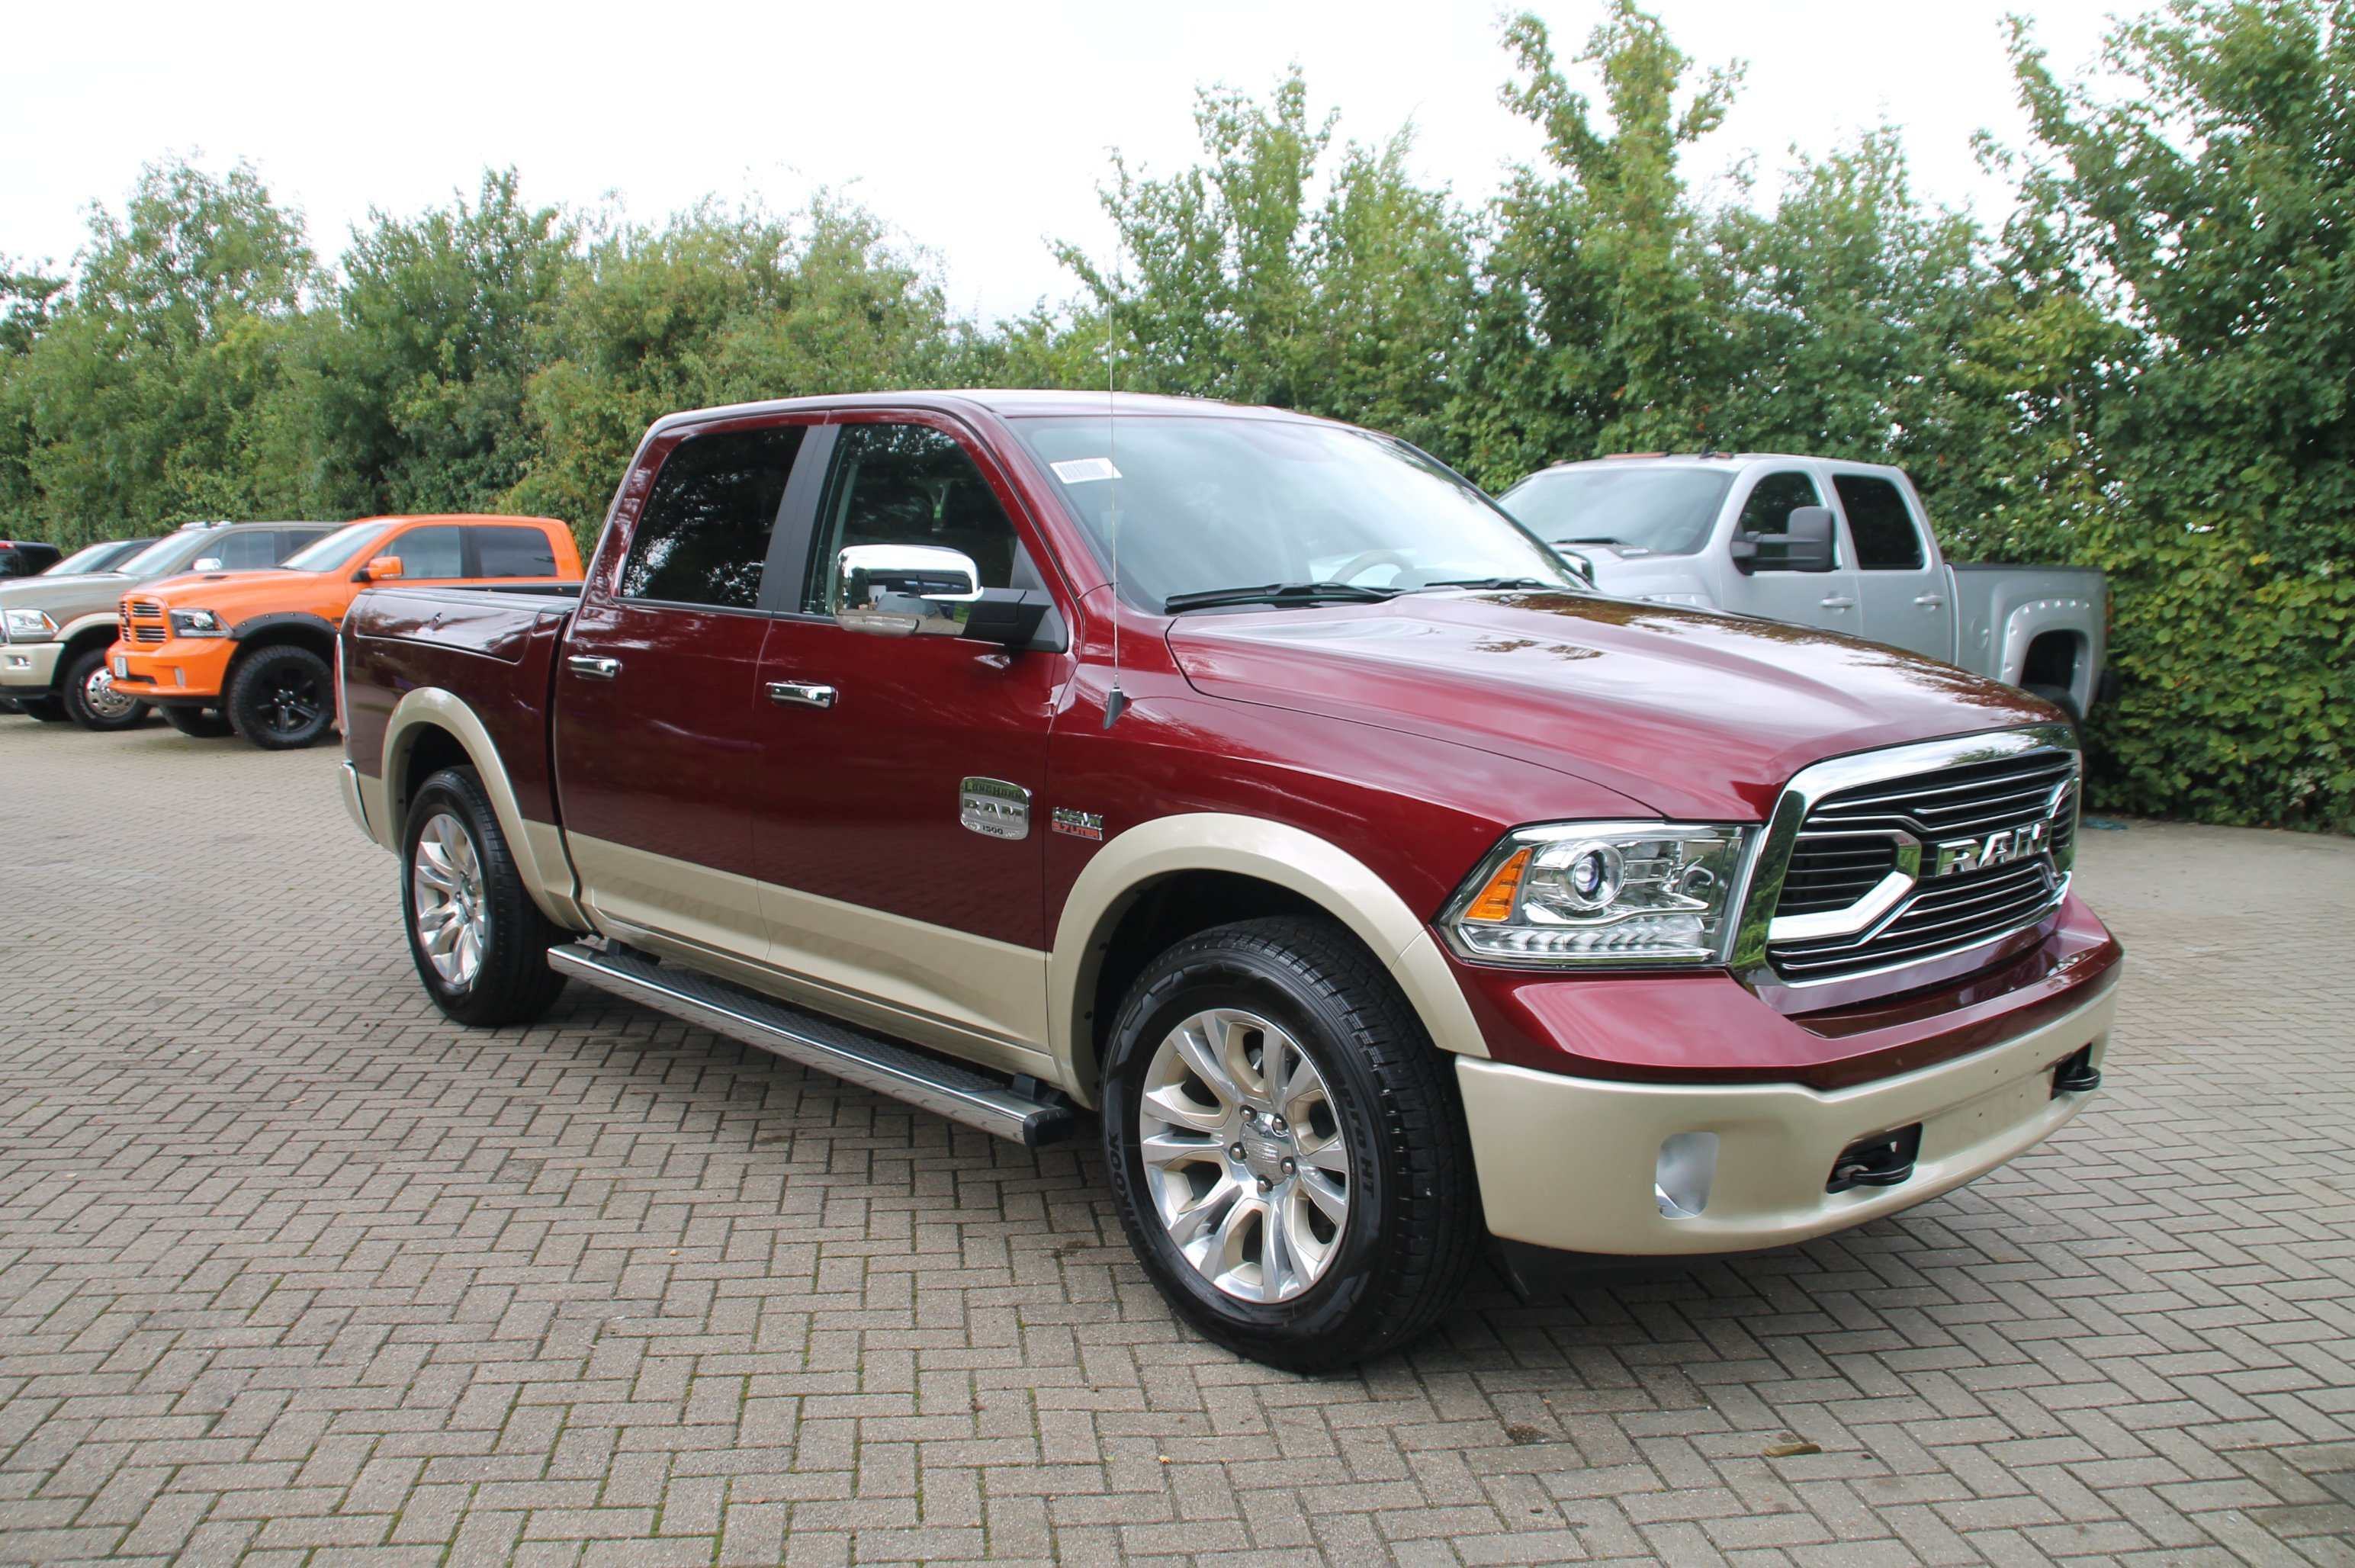 dodge ram 1500 longhorn crew cab 4x4 5 7 4dr brand new 51st state autos. Black Bedroom Furniture Sets. Home Design Ideas